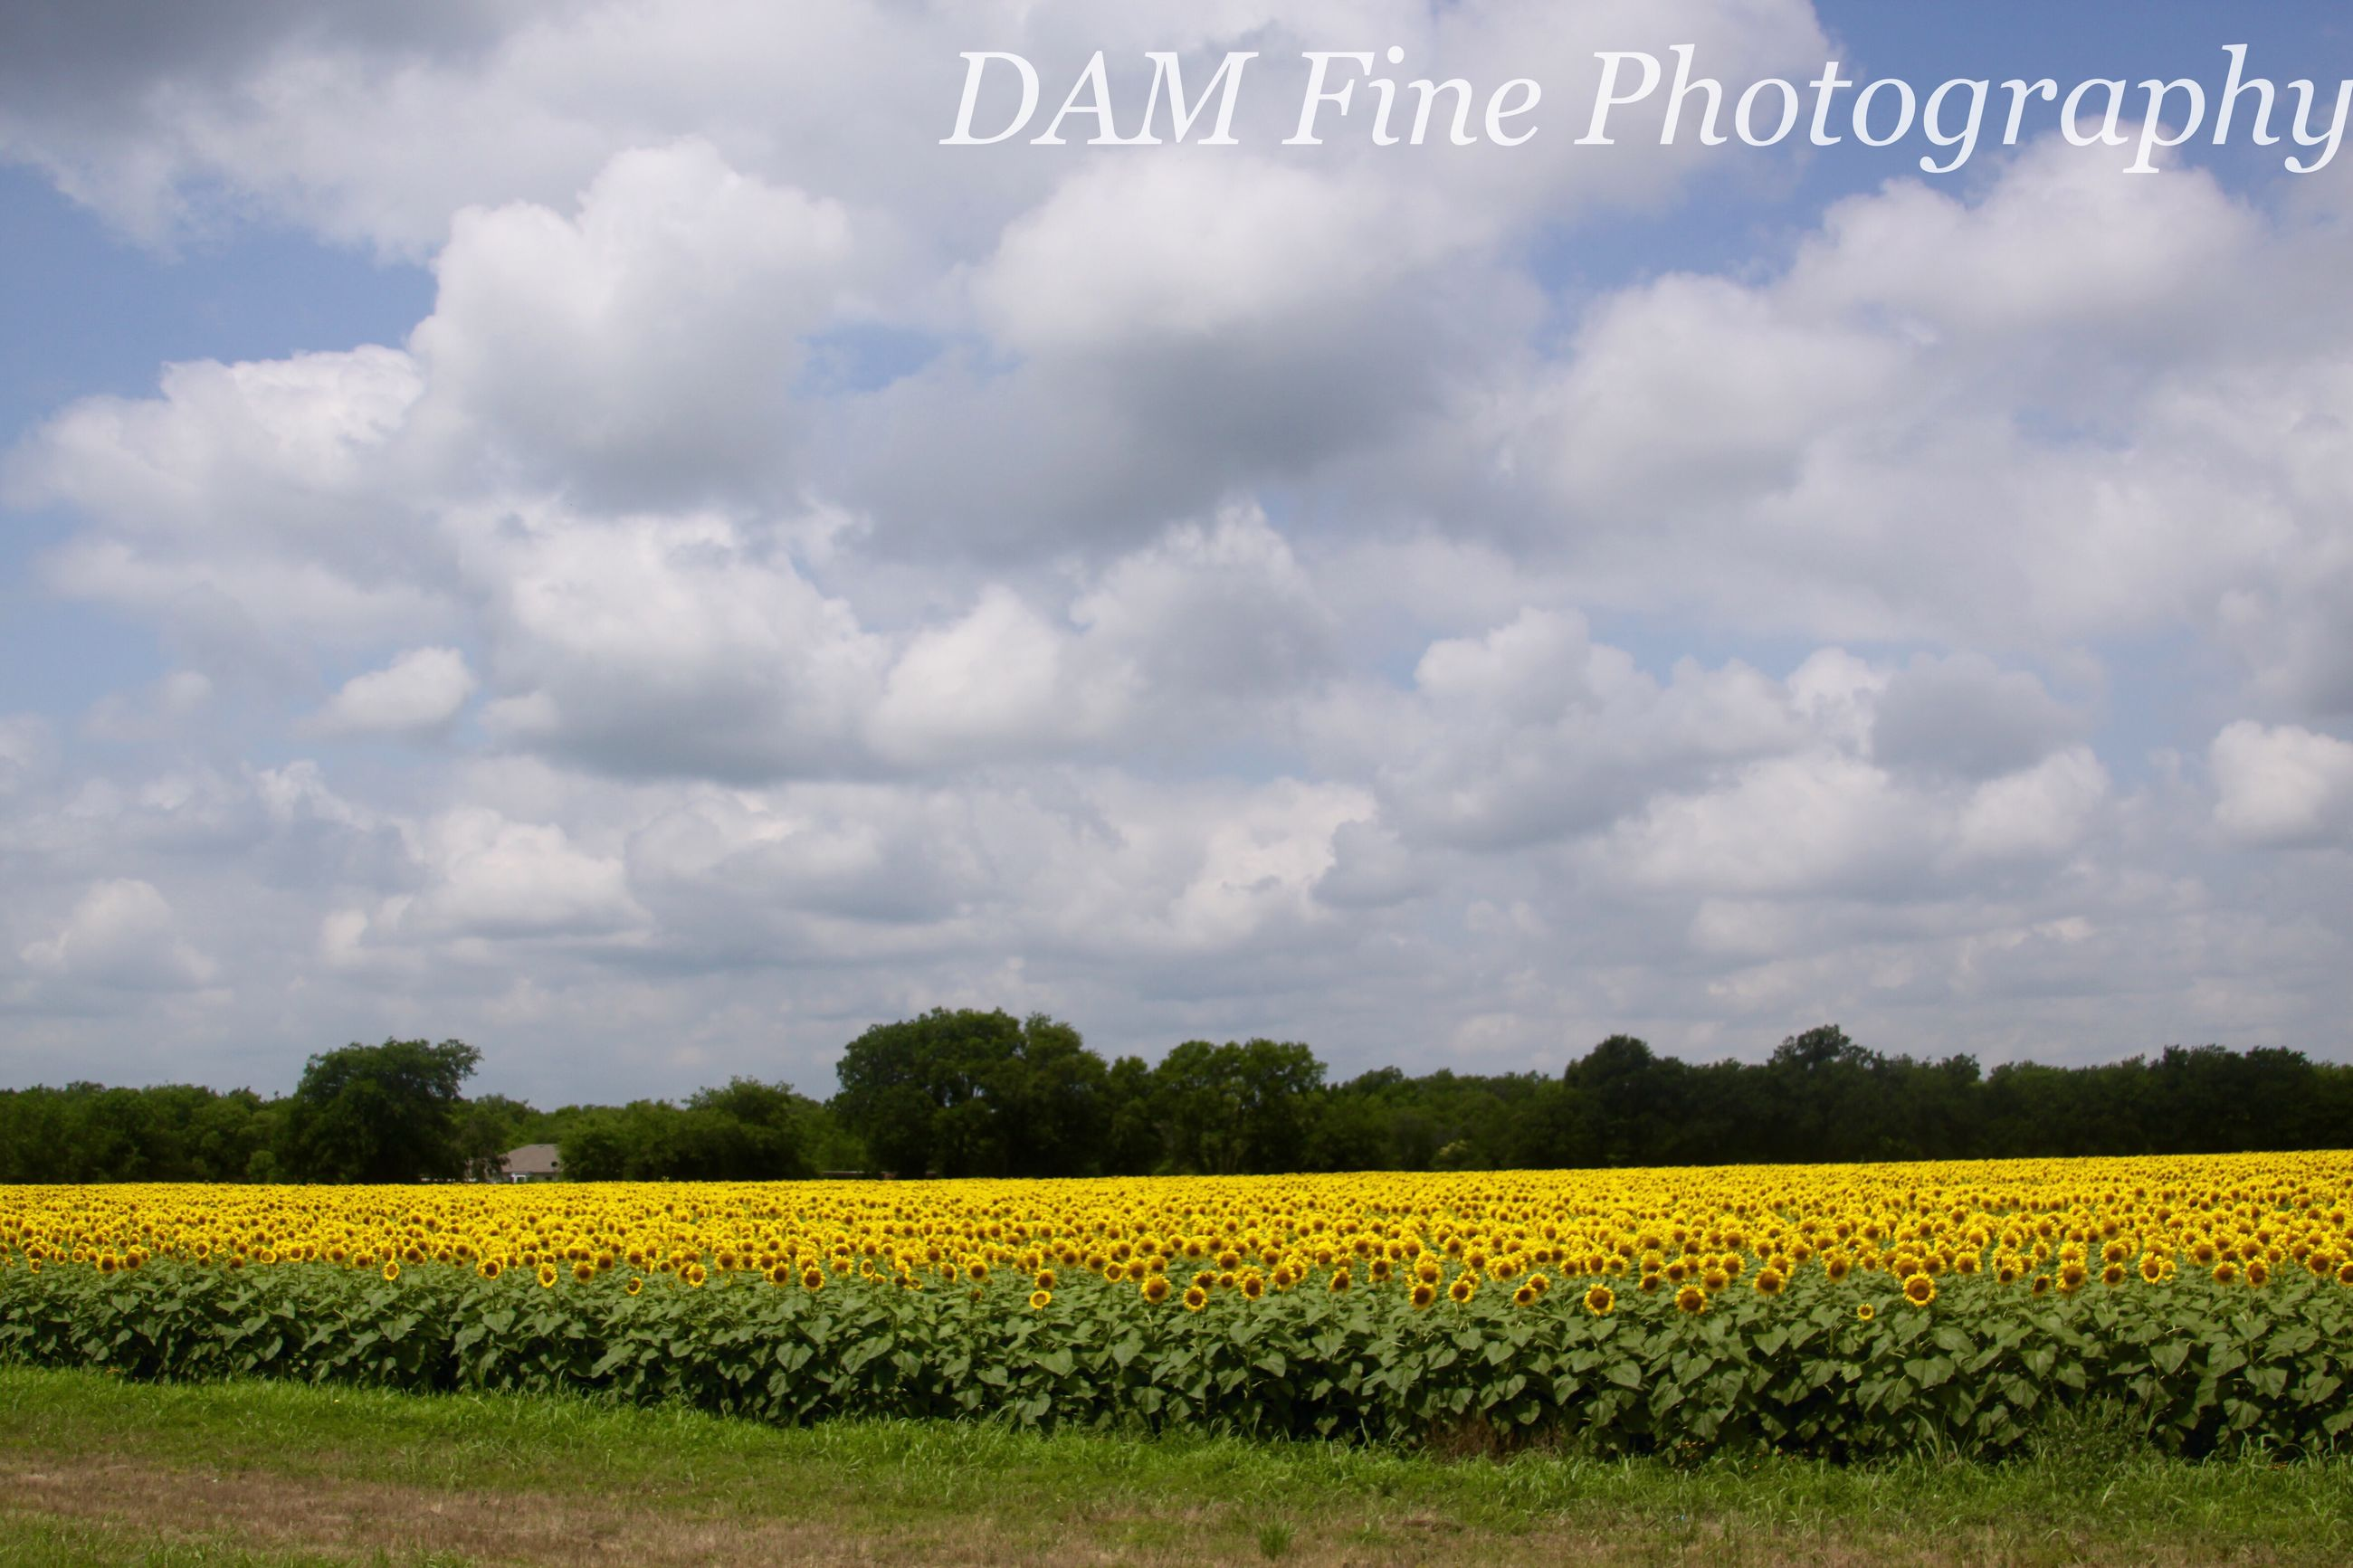 yellow, flower, agriculture, rural scene, field, beauty in nature, growth, sky, landscape, tranquil scene, farm, nature, oilseed rape, freshness, tranquility, crop, scenics, cloud - sky, abundance, cultivated land